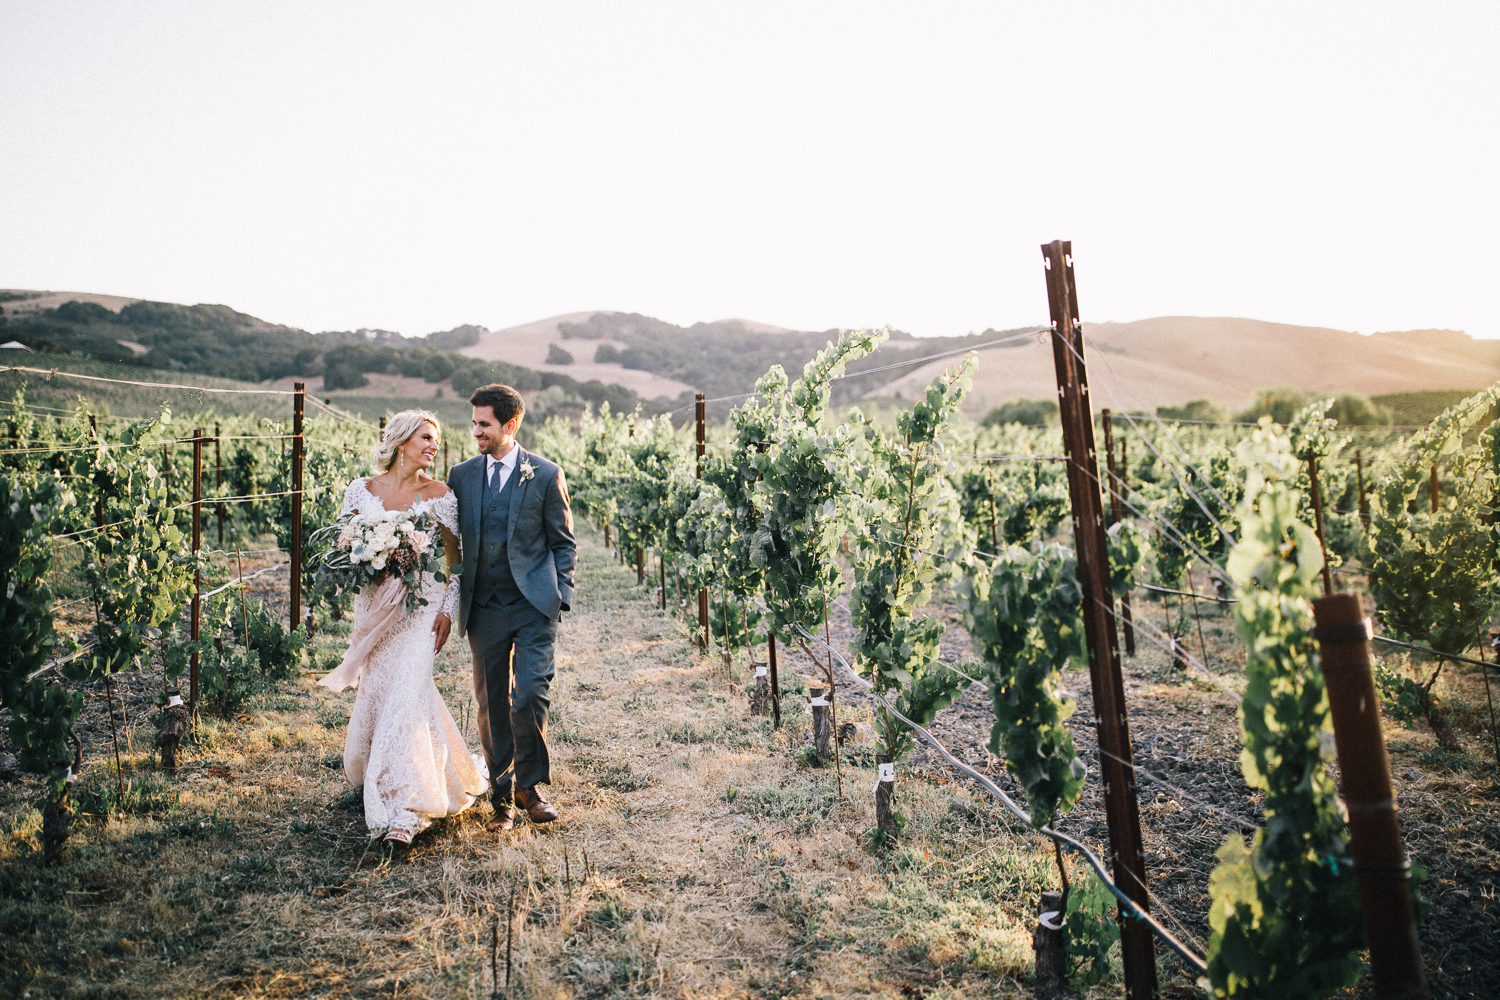 2018_08_ 112018.08.11 Cline Vinyard Wedding Blog Photos Edited For Web 0054.jpg